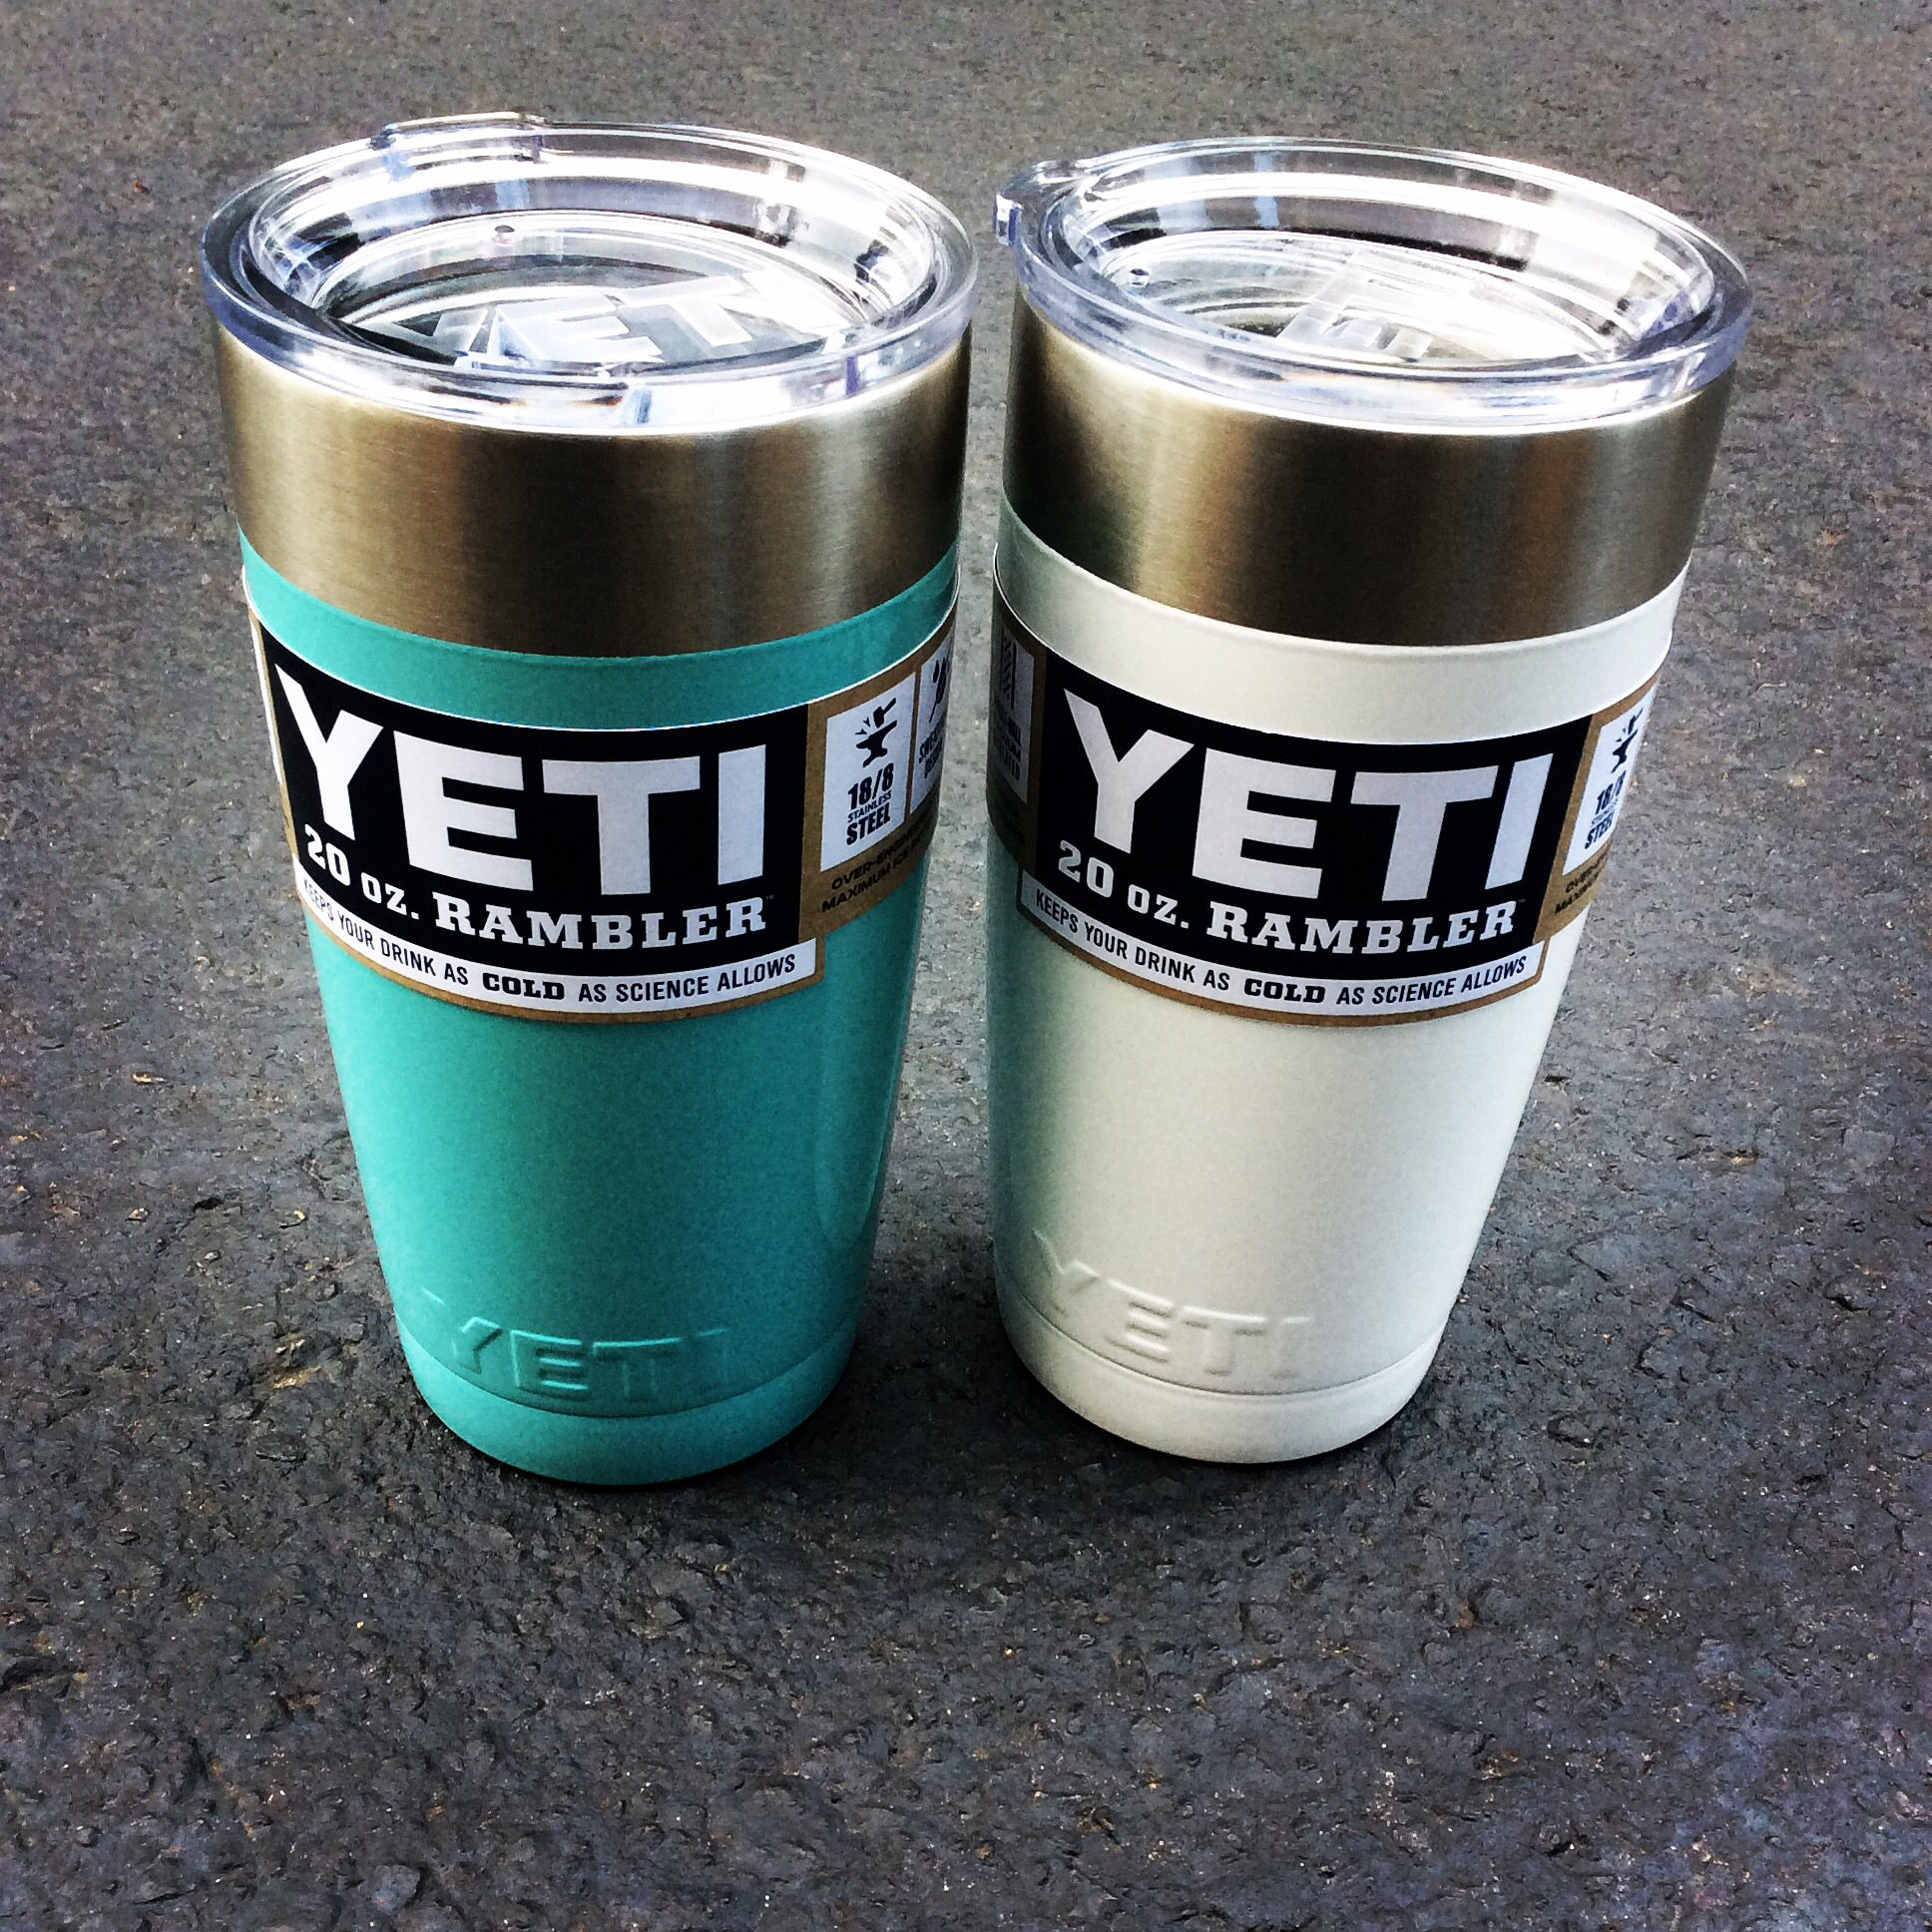 Yeti 20 oz Rambler with powder coating! The Shoe Box in